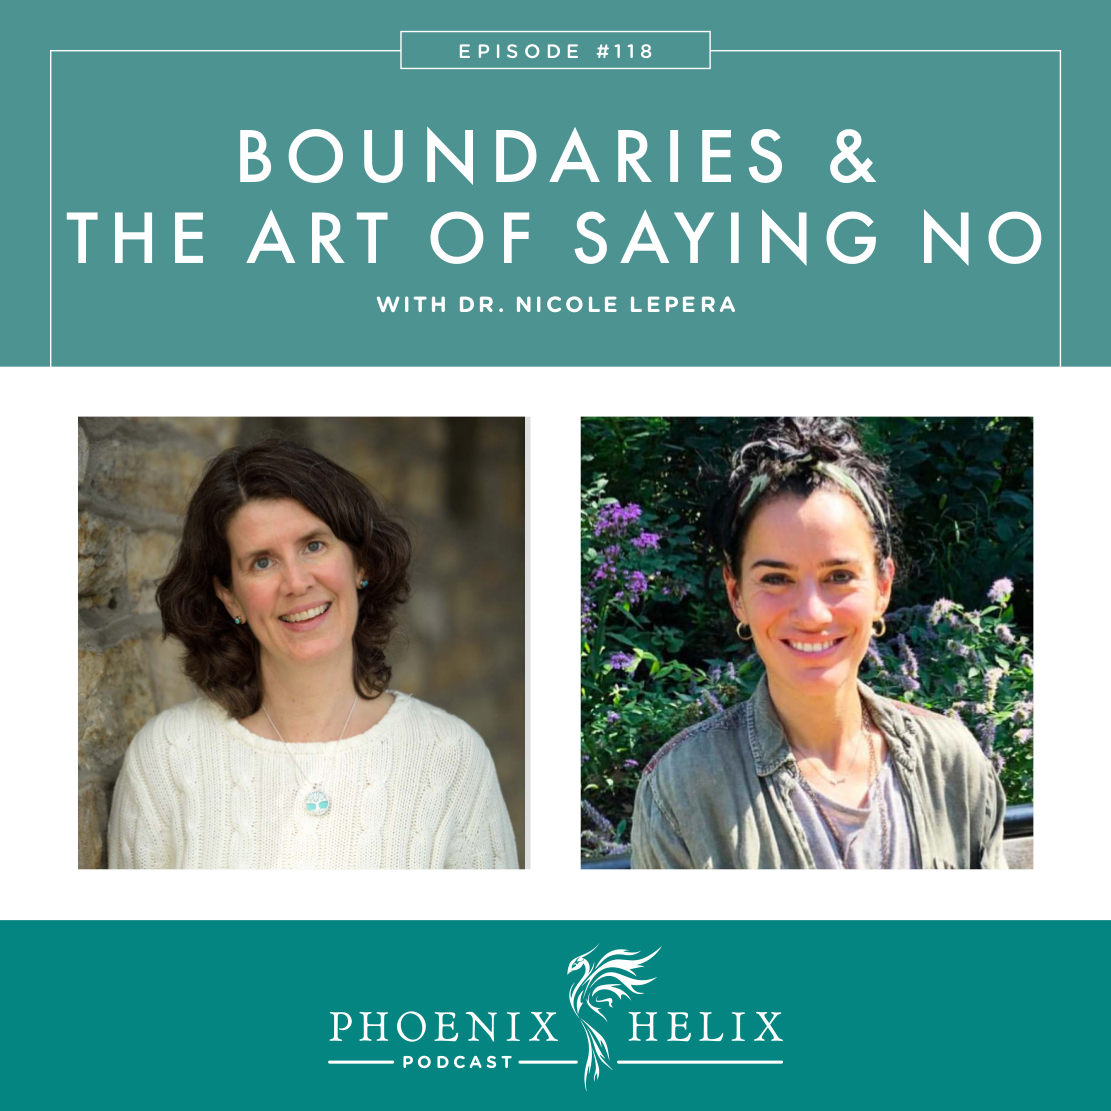 Boundaries and the Art of Saying No with Dr. Nicole LePera | Phoenix Helix Podcast